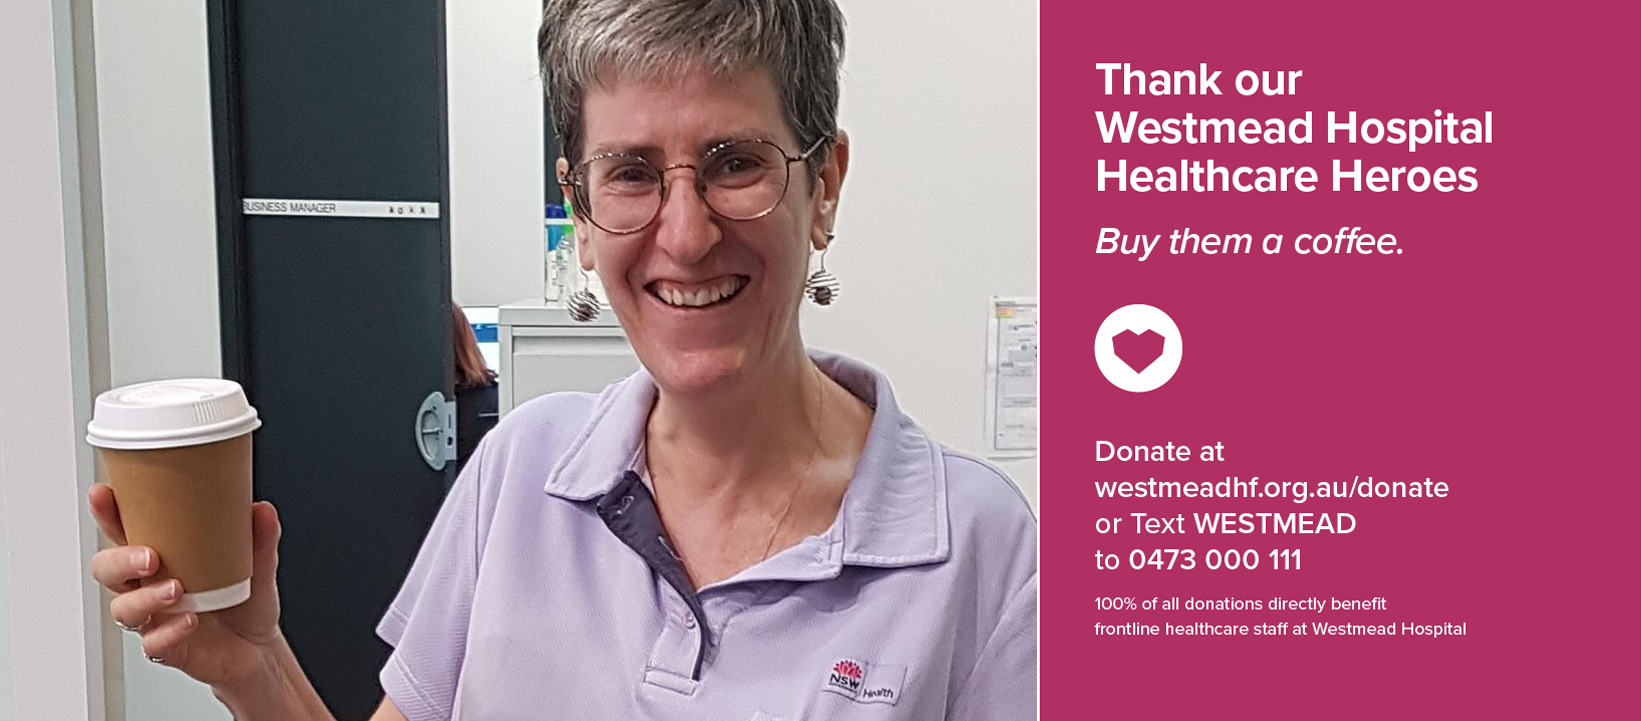 Thank our Westmead Healthcare Heroes <span>– Buy them a Coffee</span>